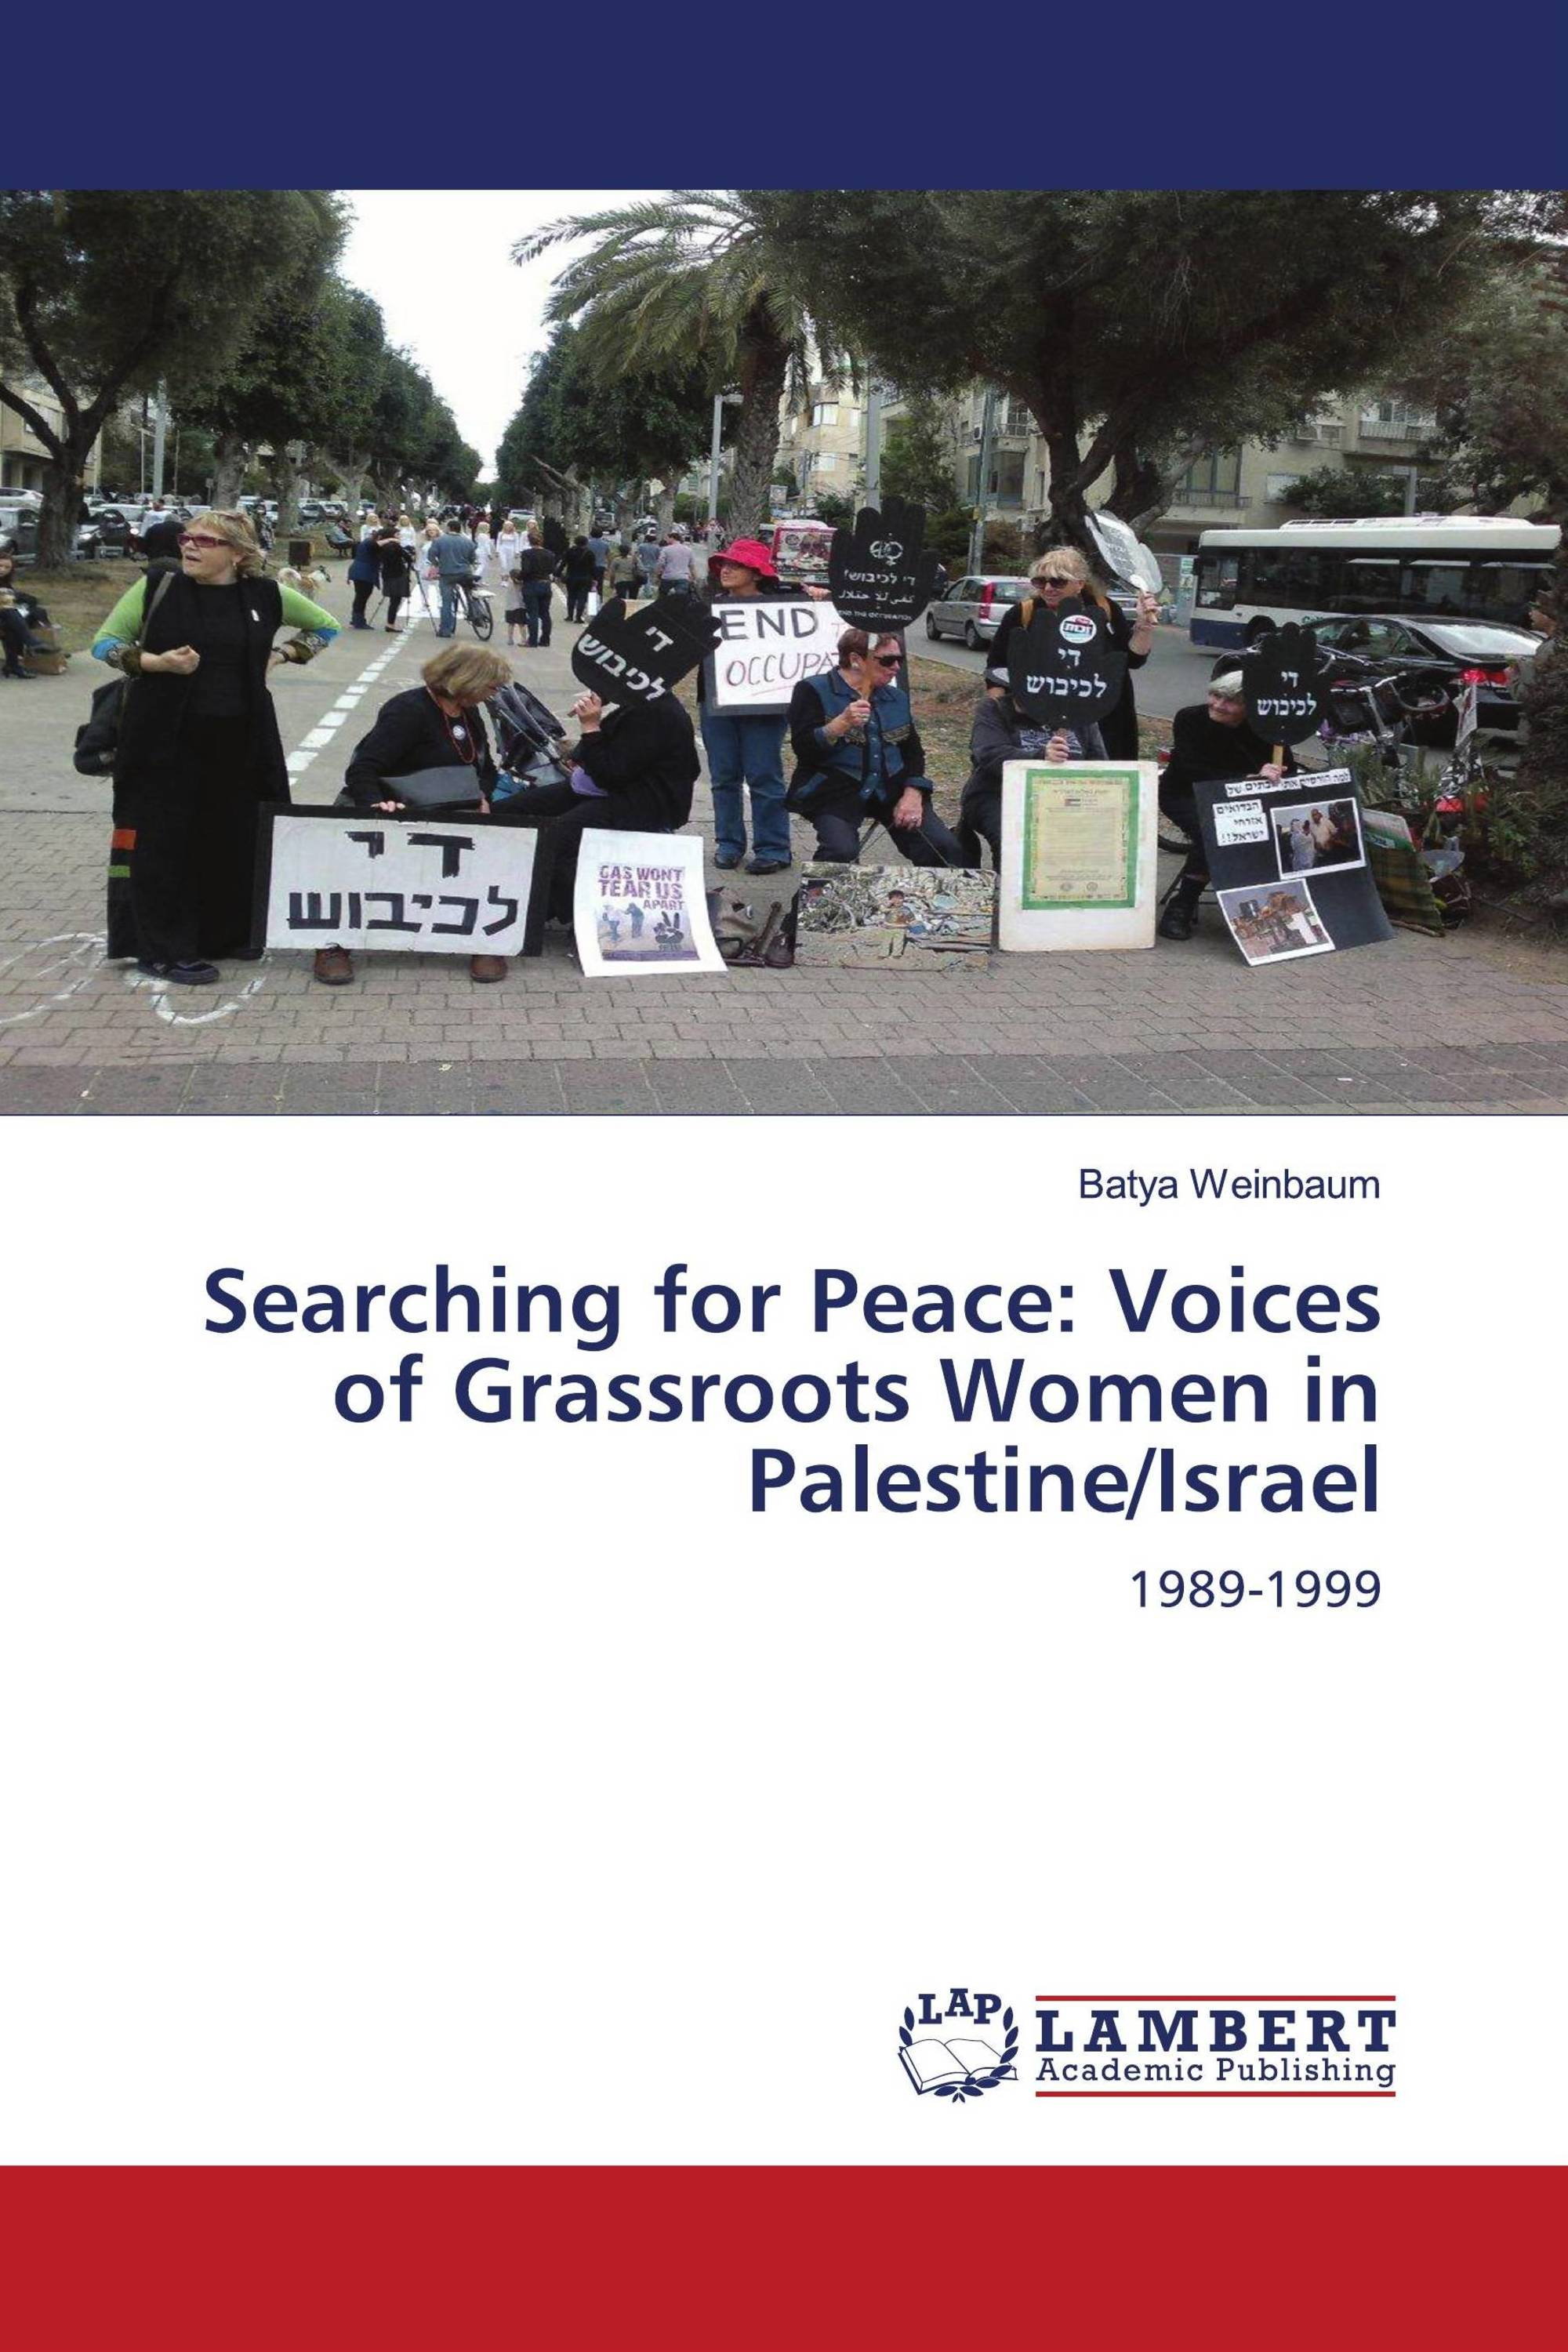 Searching for Peace: Voices of Grassroots Women in Palestine/Israel